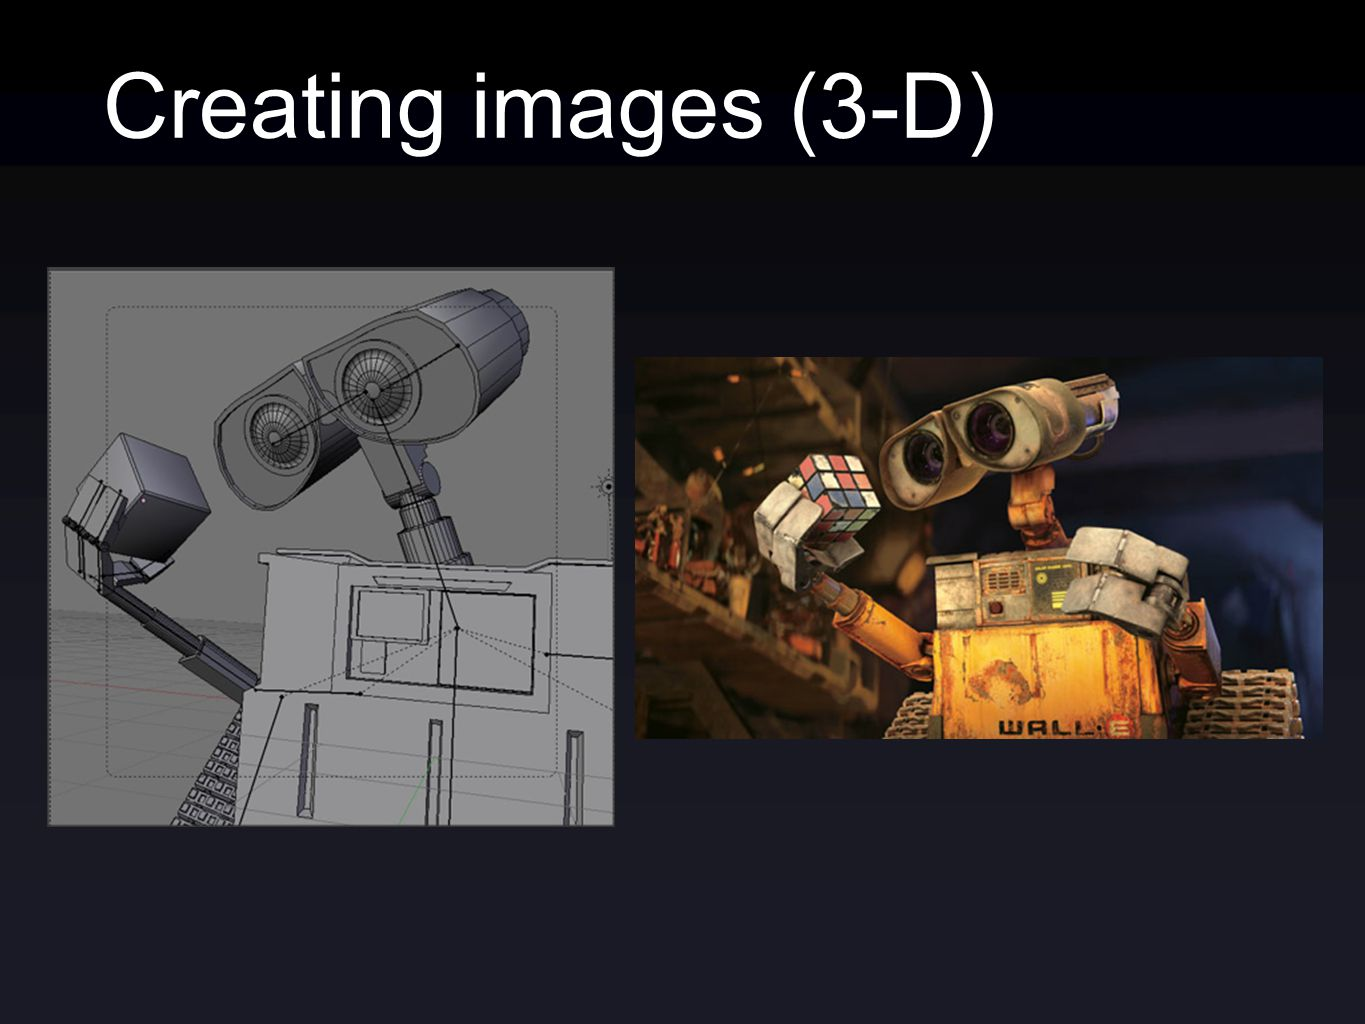 Creating images (3-D)